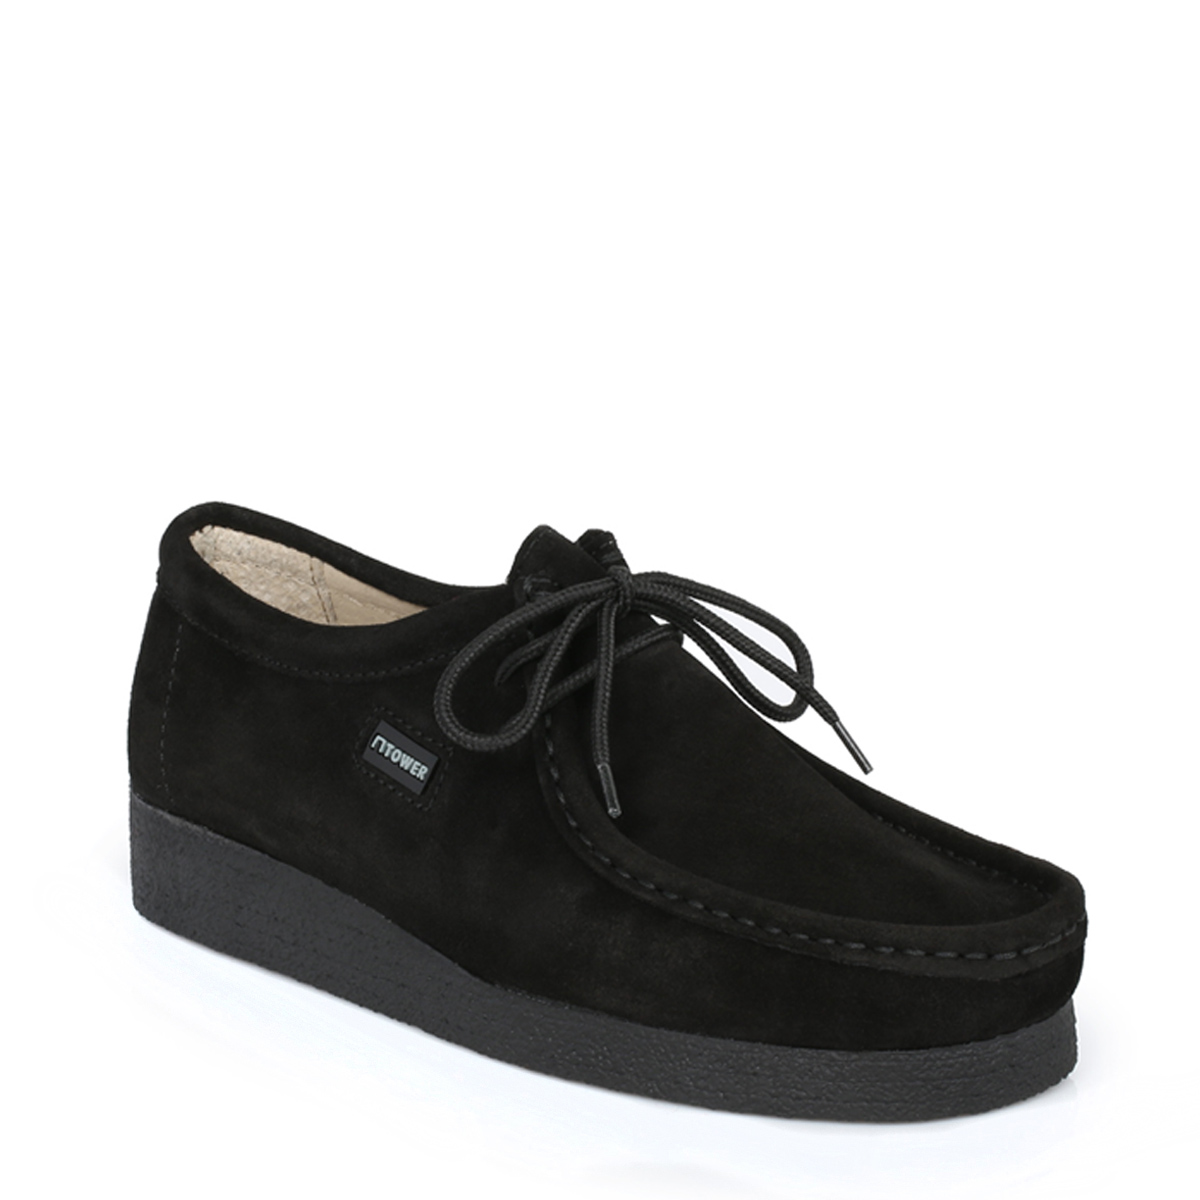 Tower Footwear Negro Wallabee Suede Zapatos-UK 8 BsCeJUb